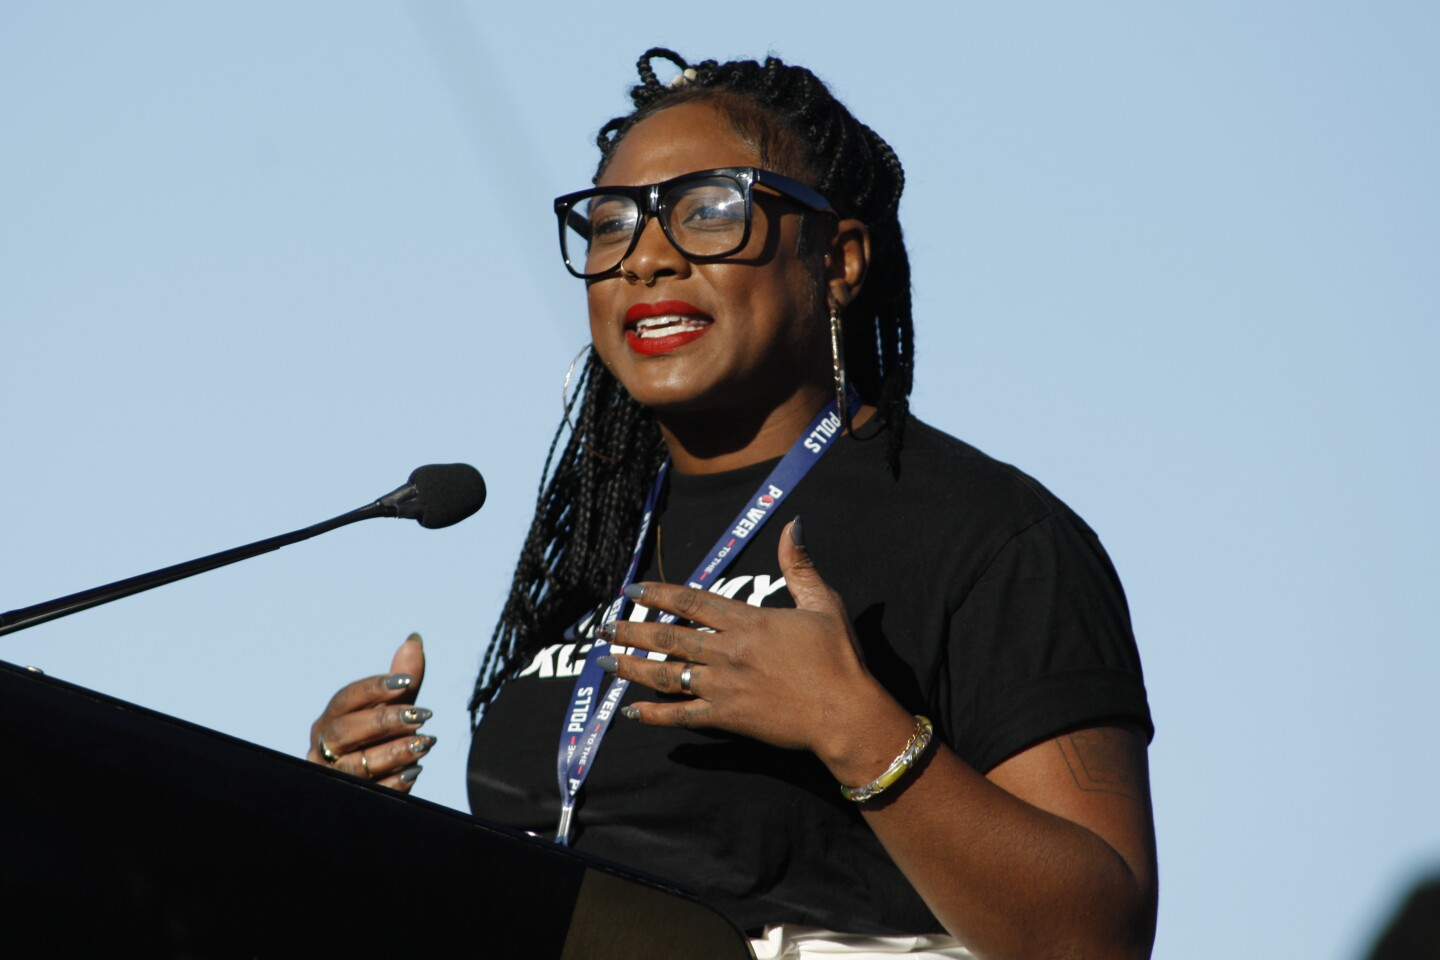 A woman with braided hair, red lipstick and thick, black sunglasses speaks at a podium.